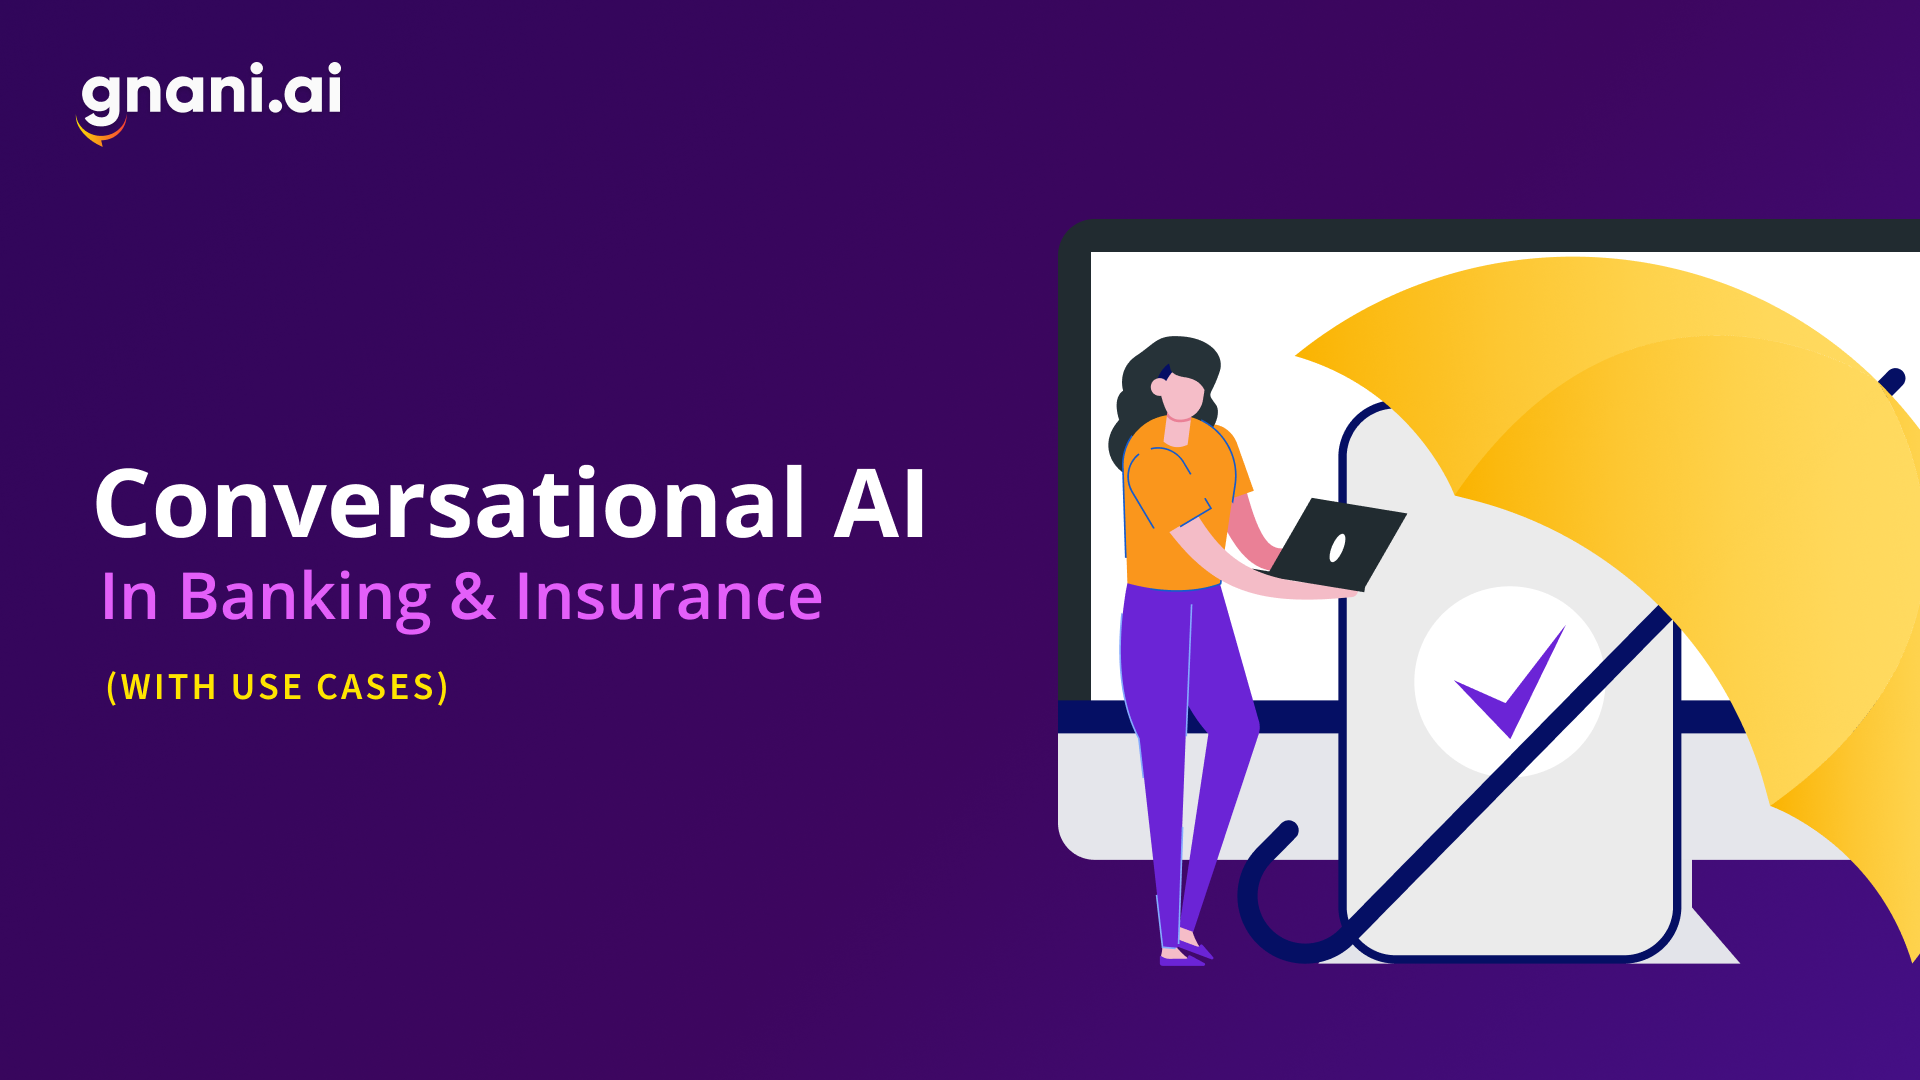 conversational ai in banking and insurance use cases featured image